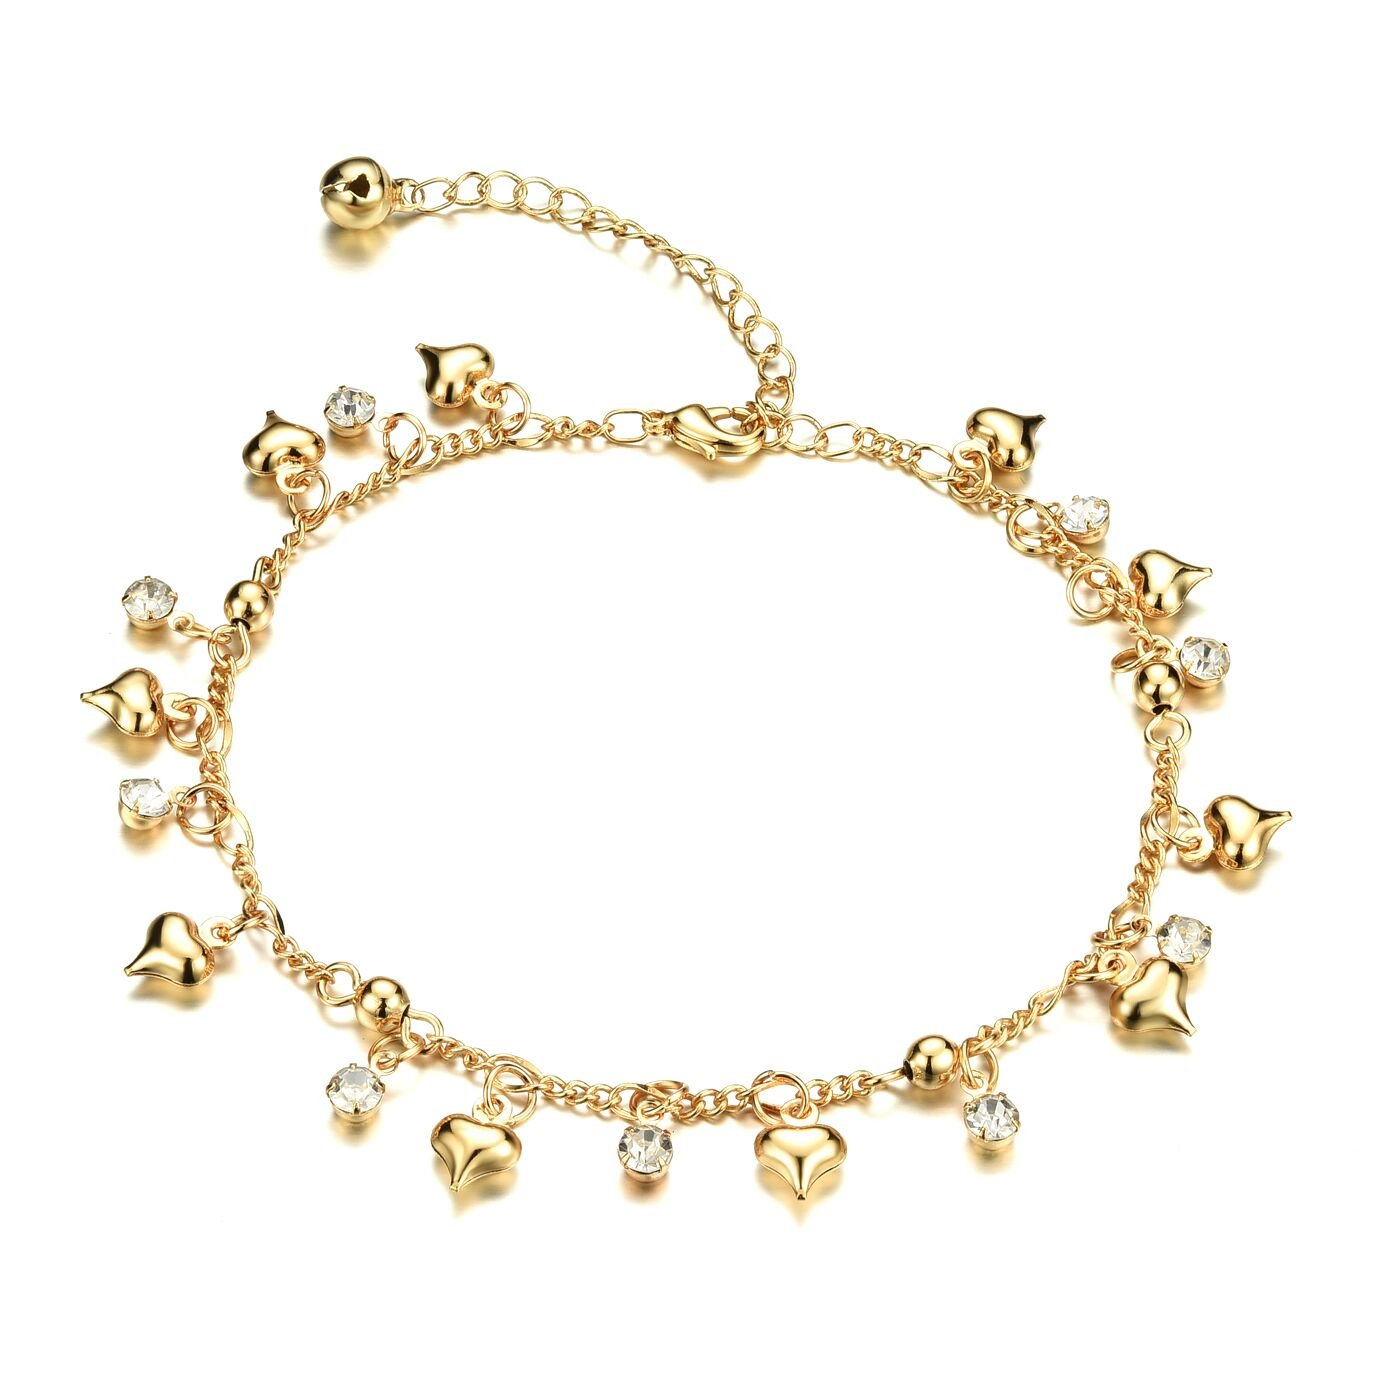 Fate Love Heart Shape Pendant Twisted Rope Chain Anklet 18k Gold Plated Foot Chain, 8'', Adjustable